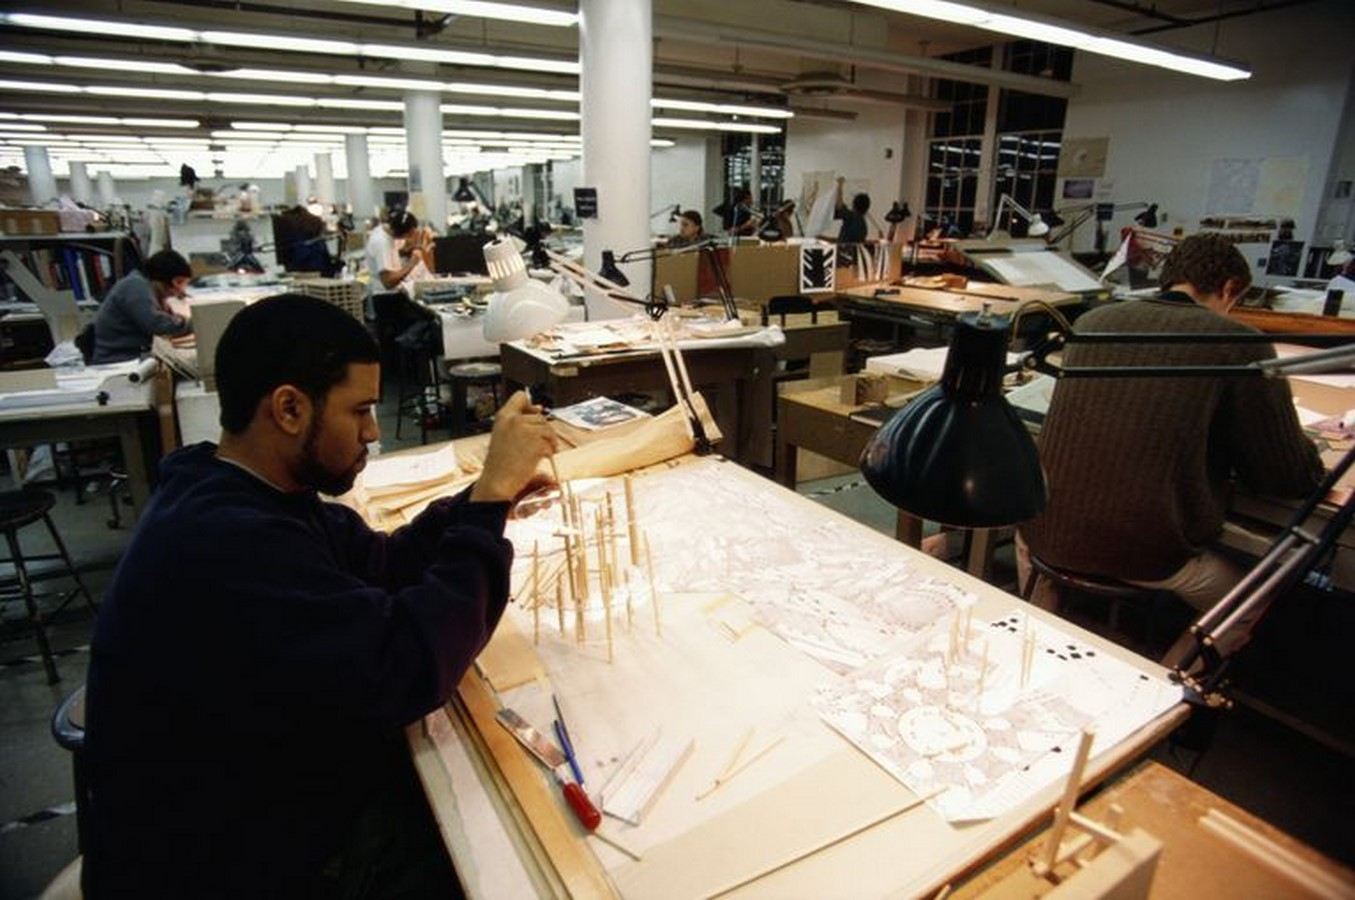 The significance of an Architecture degree